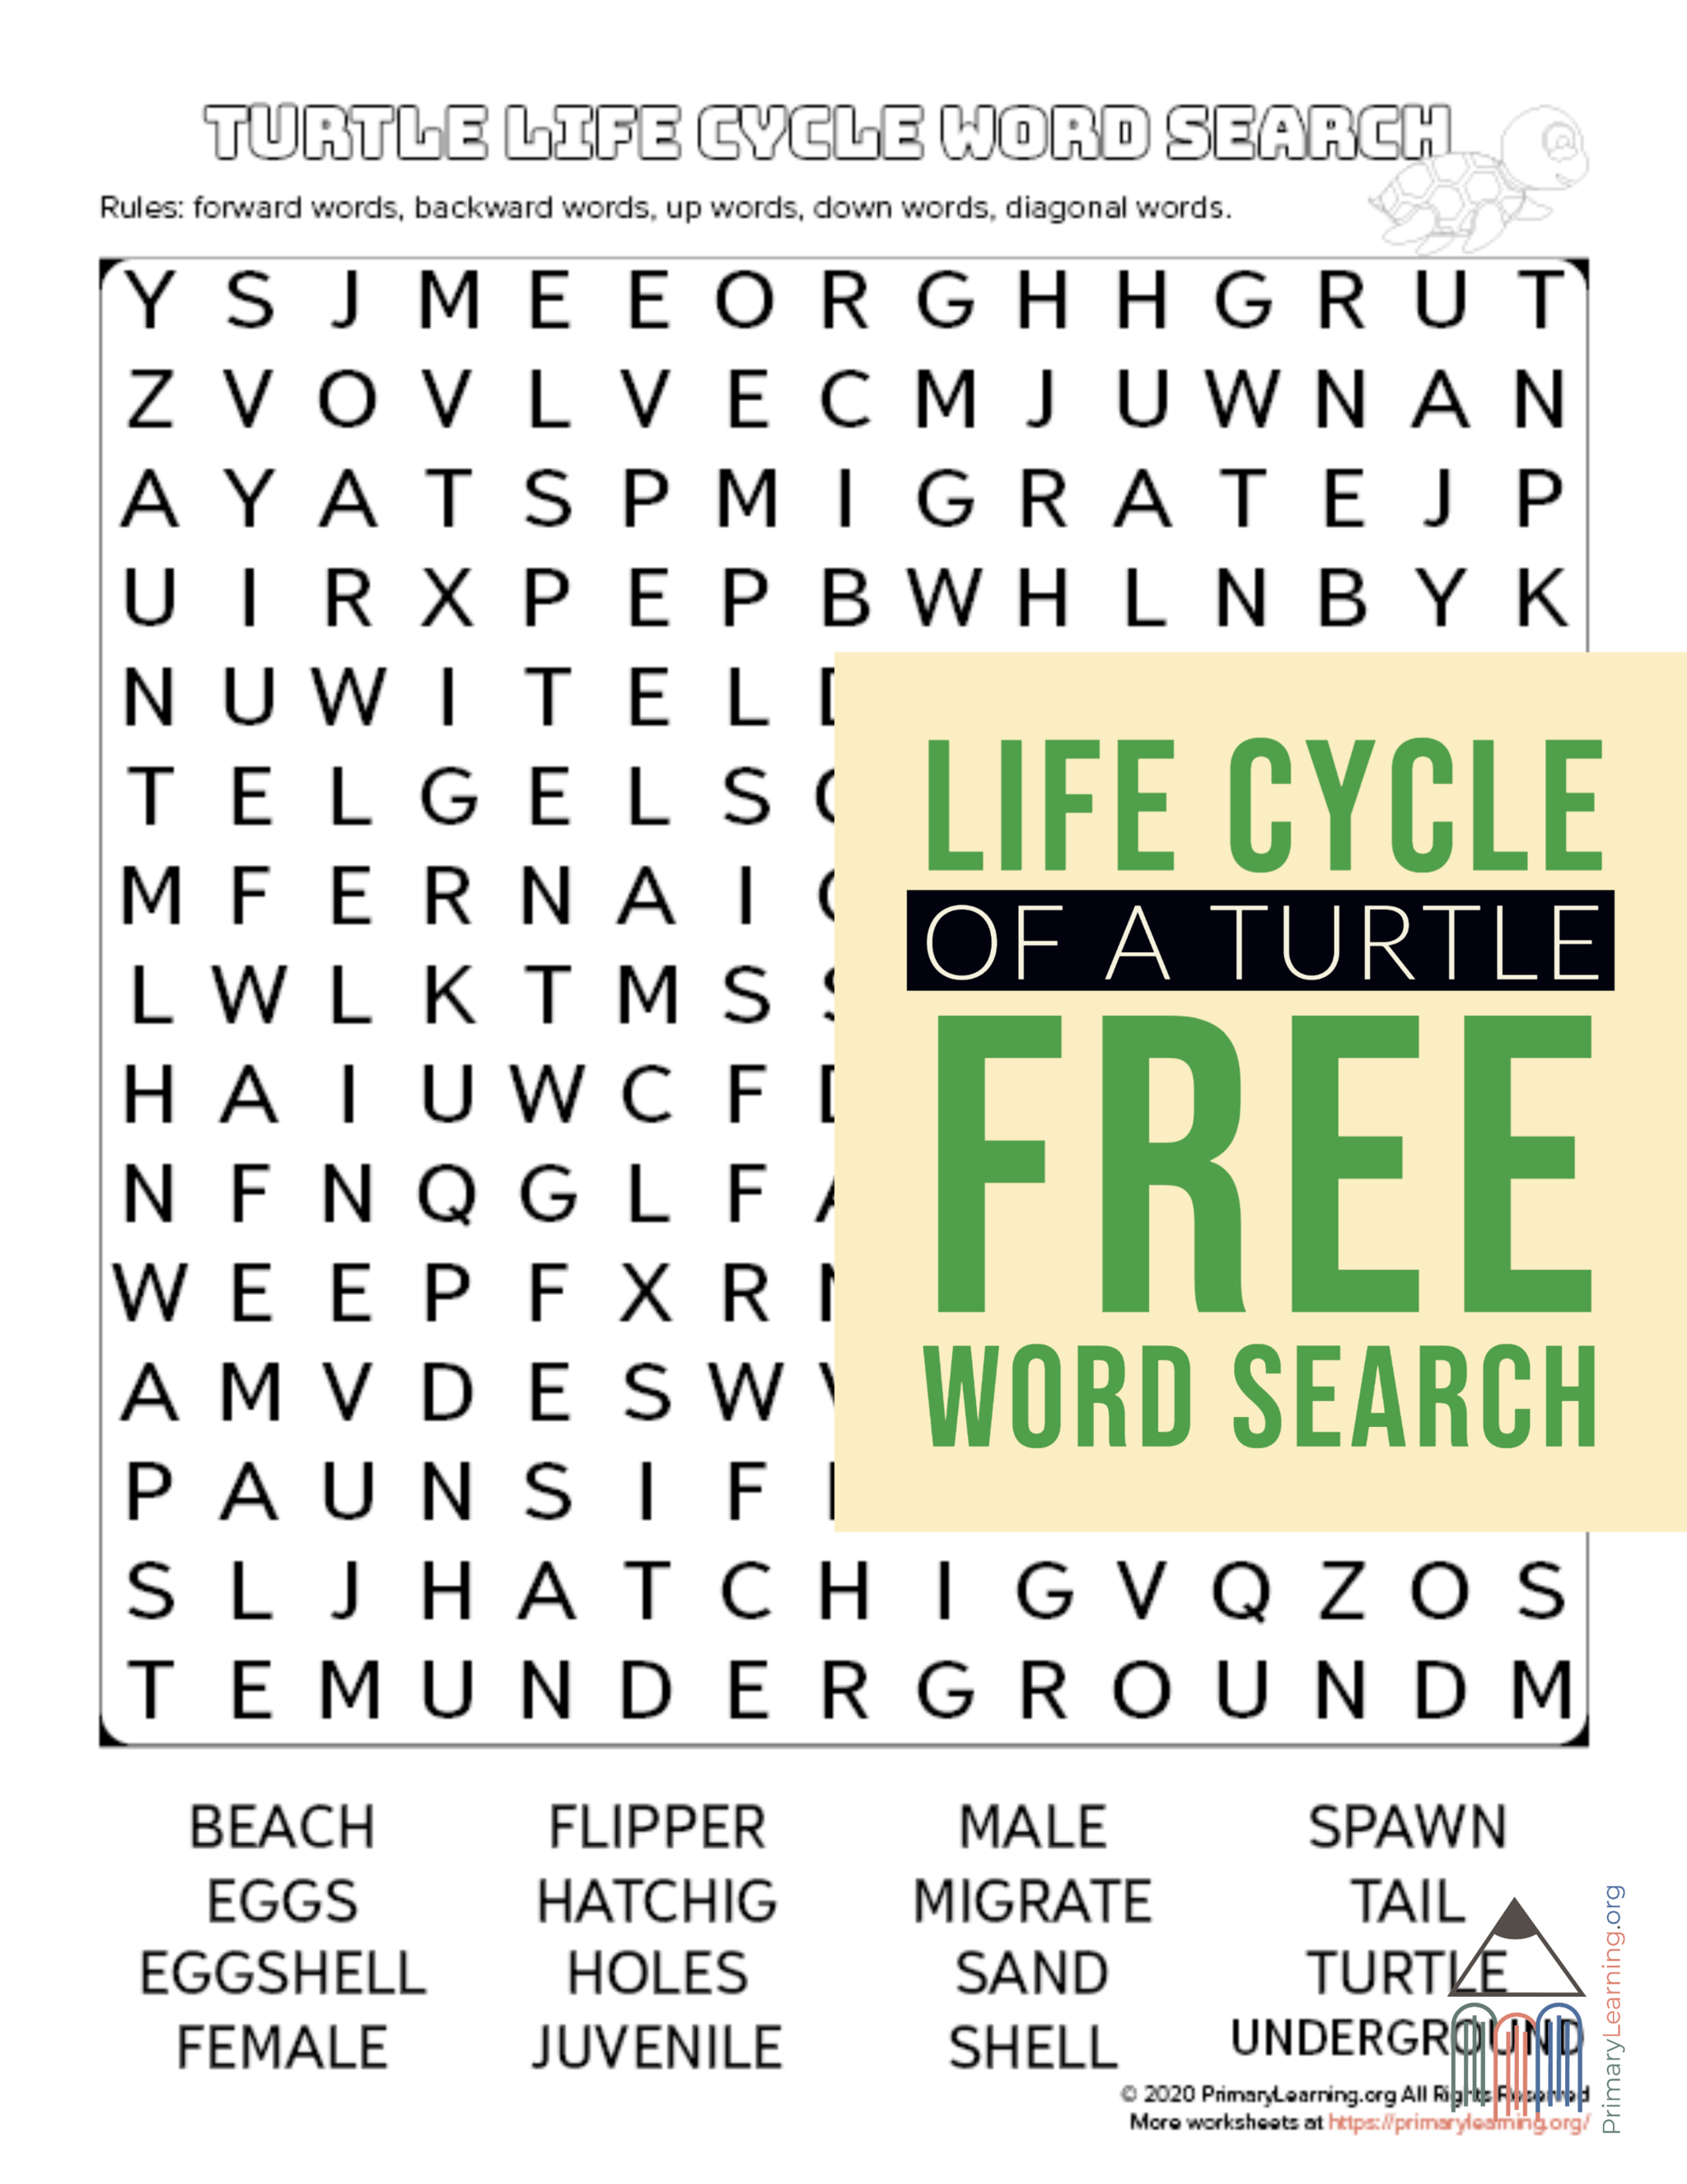 Turtle Life Cycle Word Search